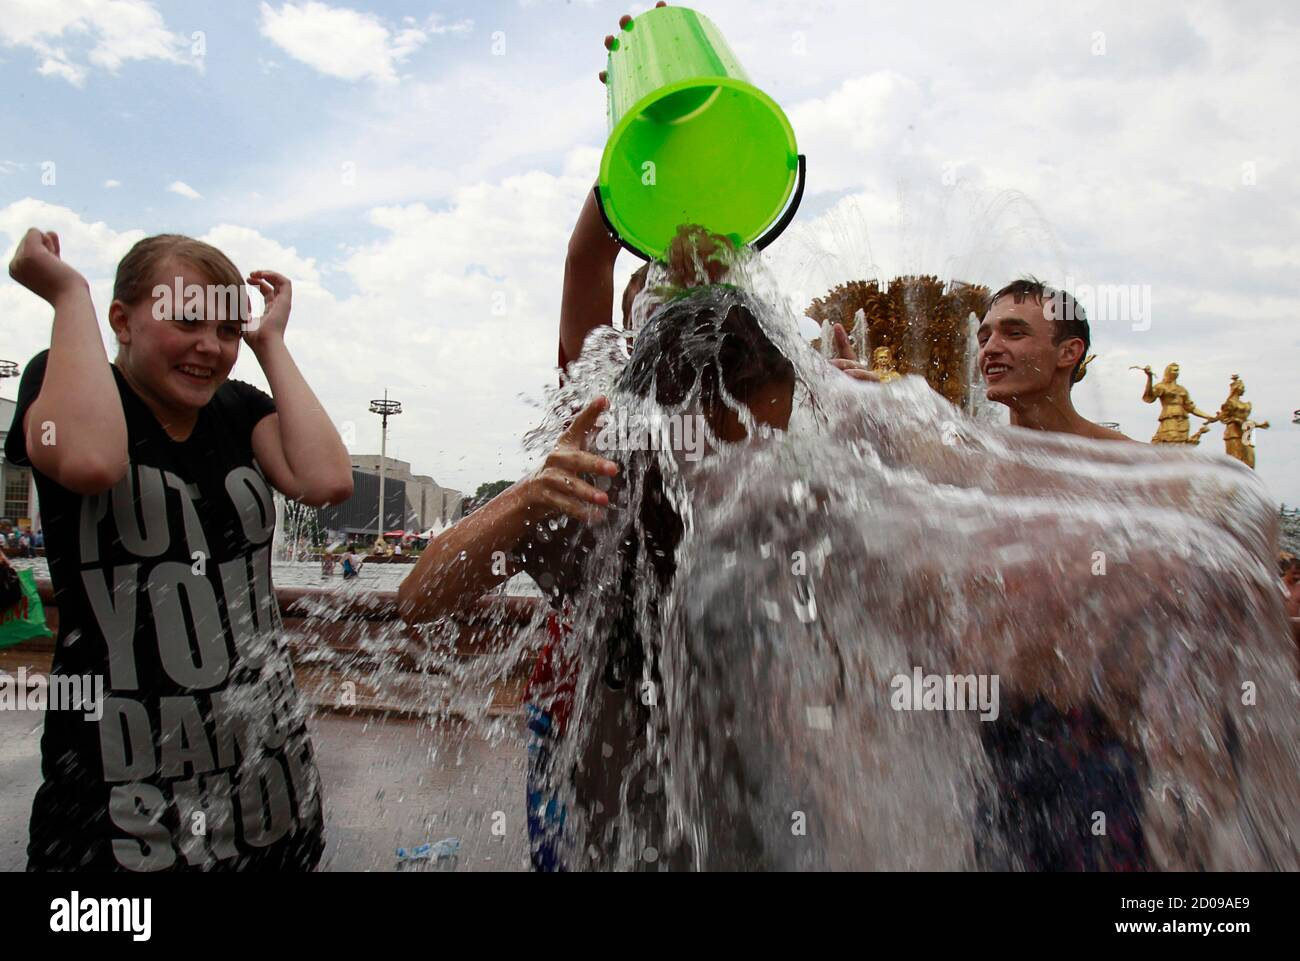 Page 2 28 Degrees Celsius High Resolution Stock Photography And Images Alamy